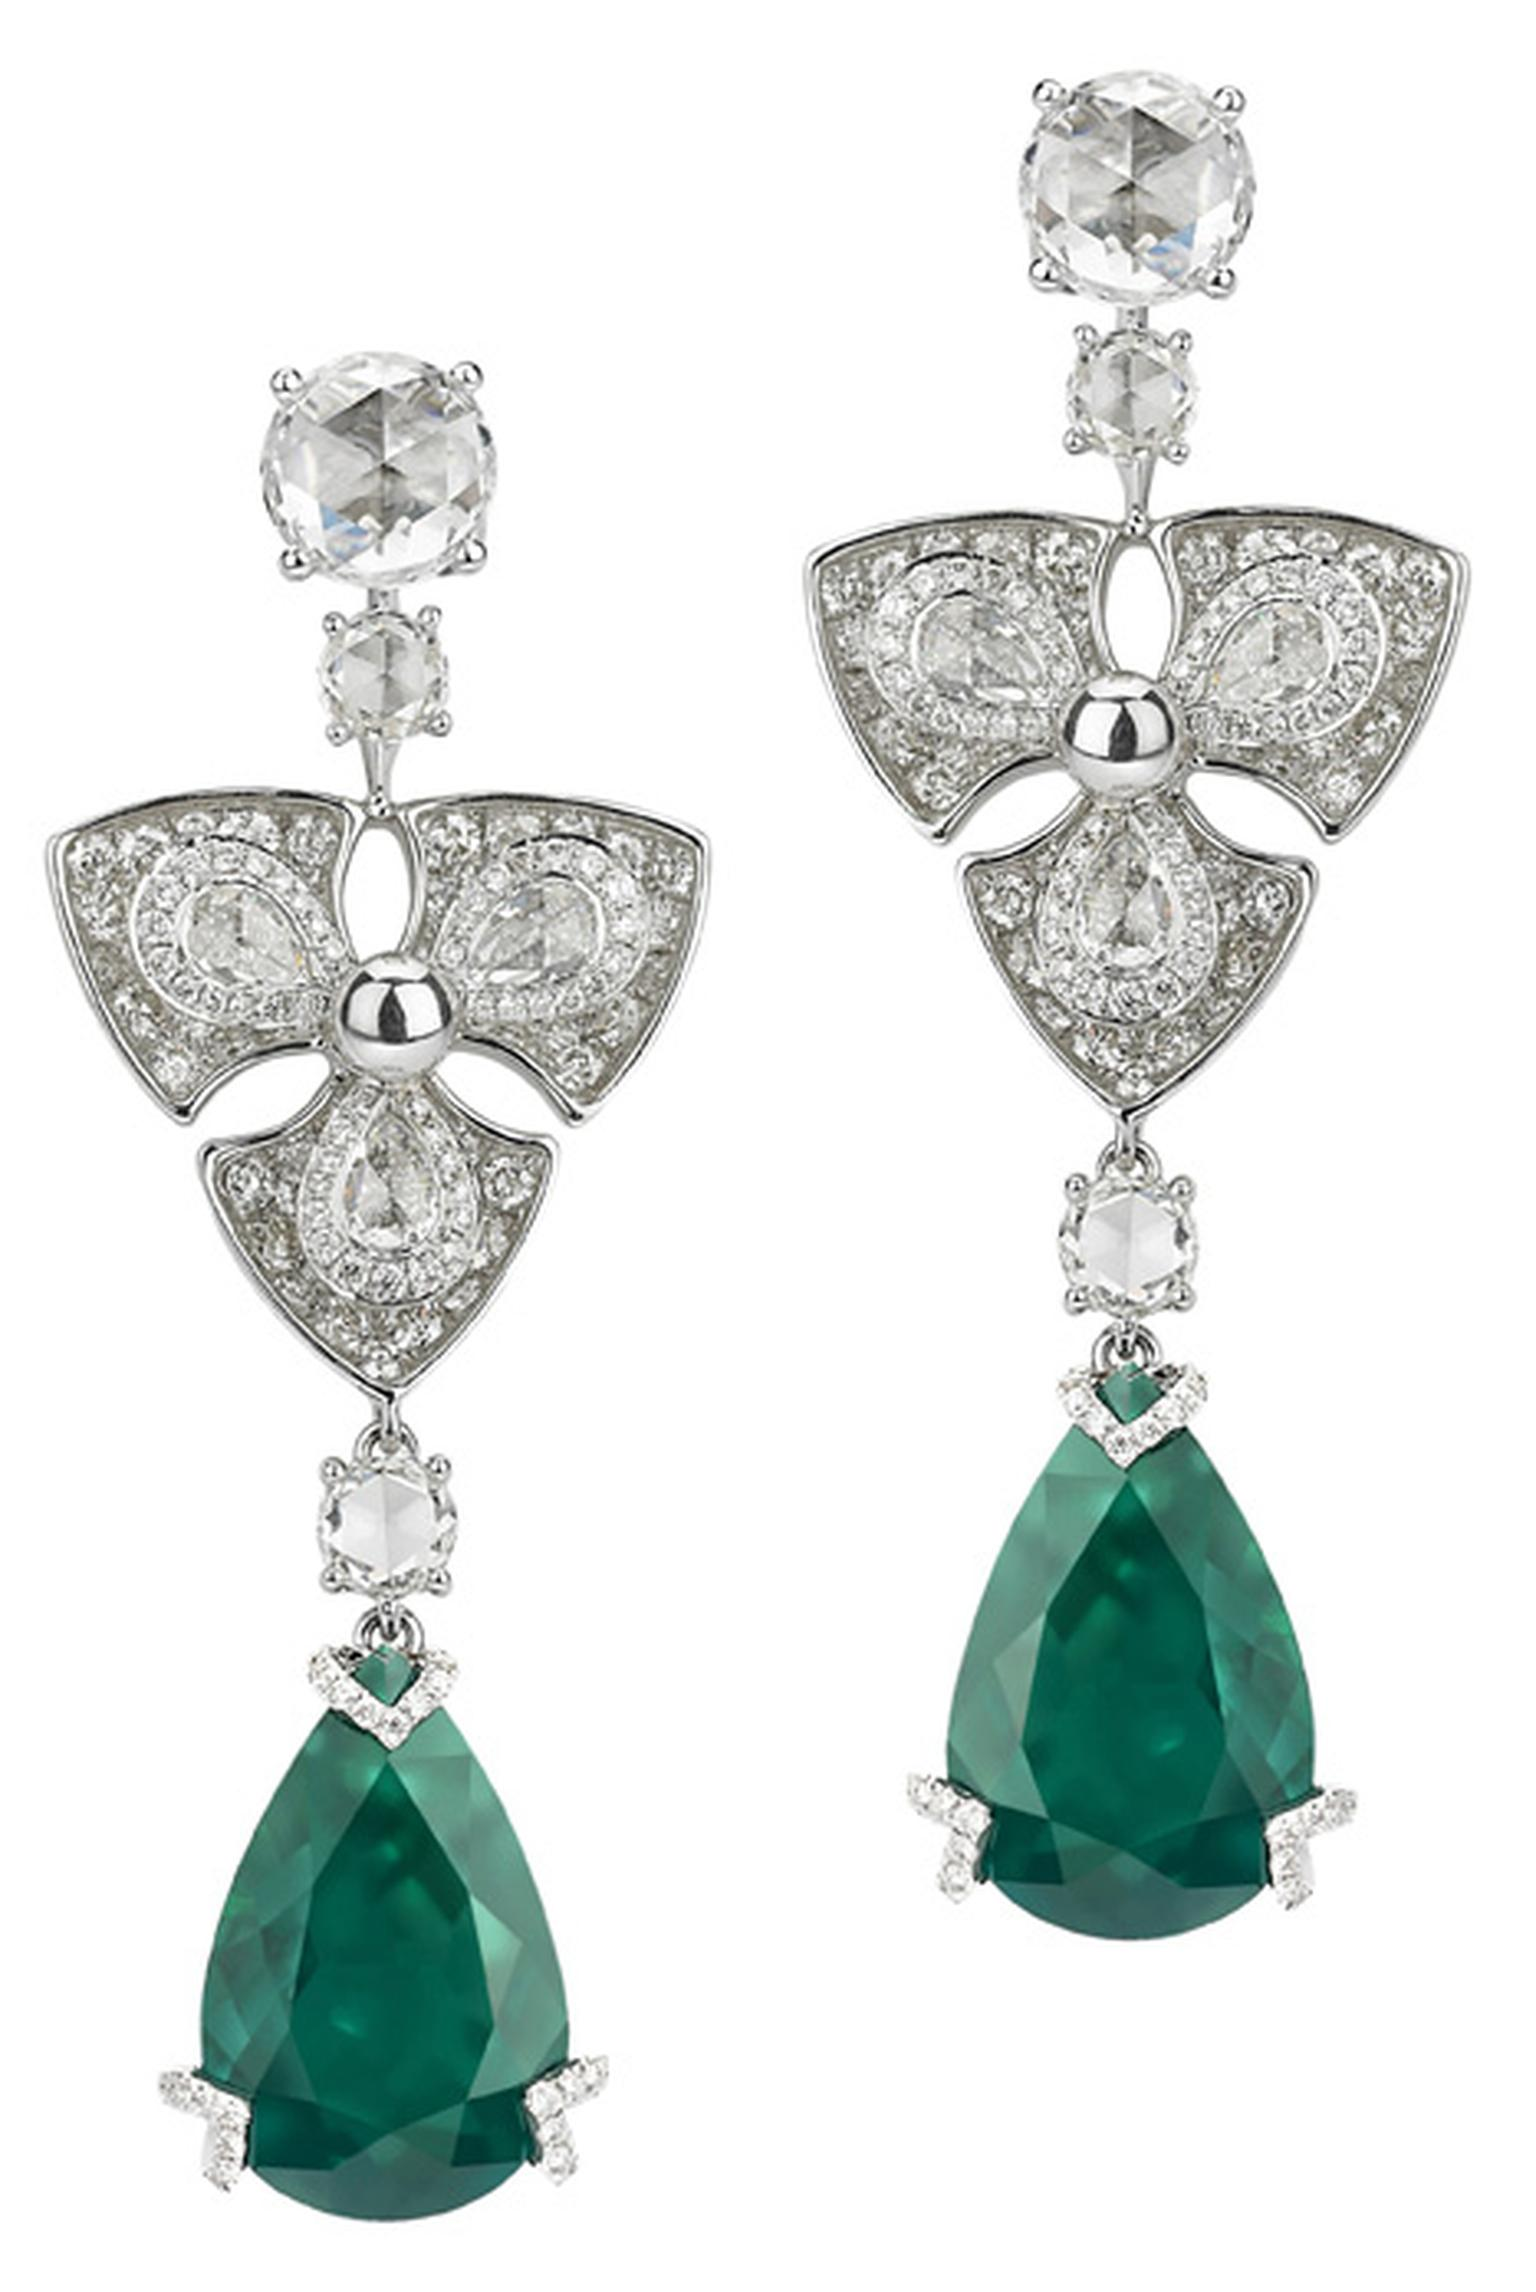 Avakian-pear-shape-emerald-earrings